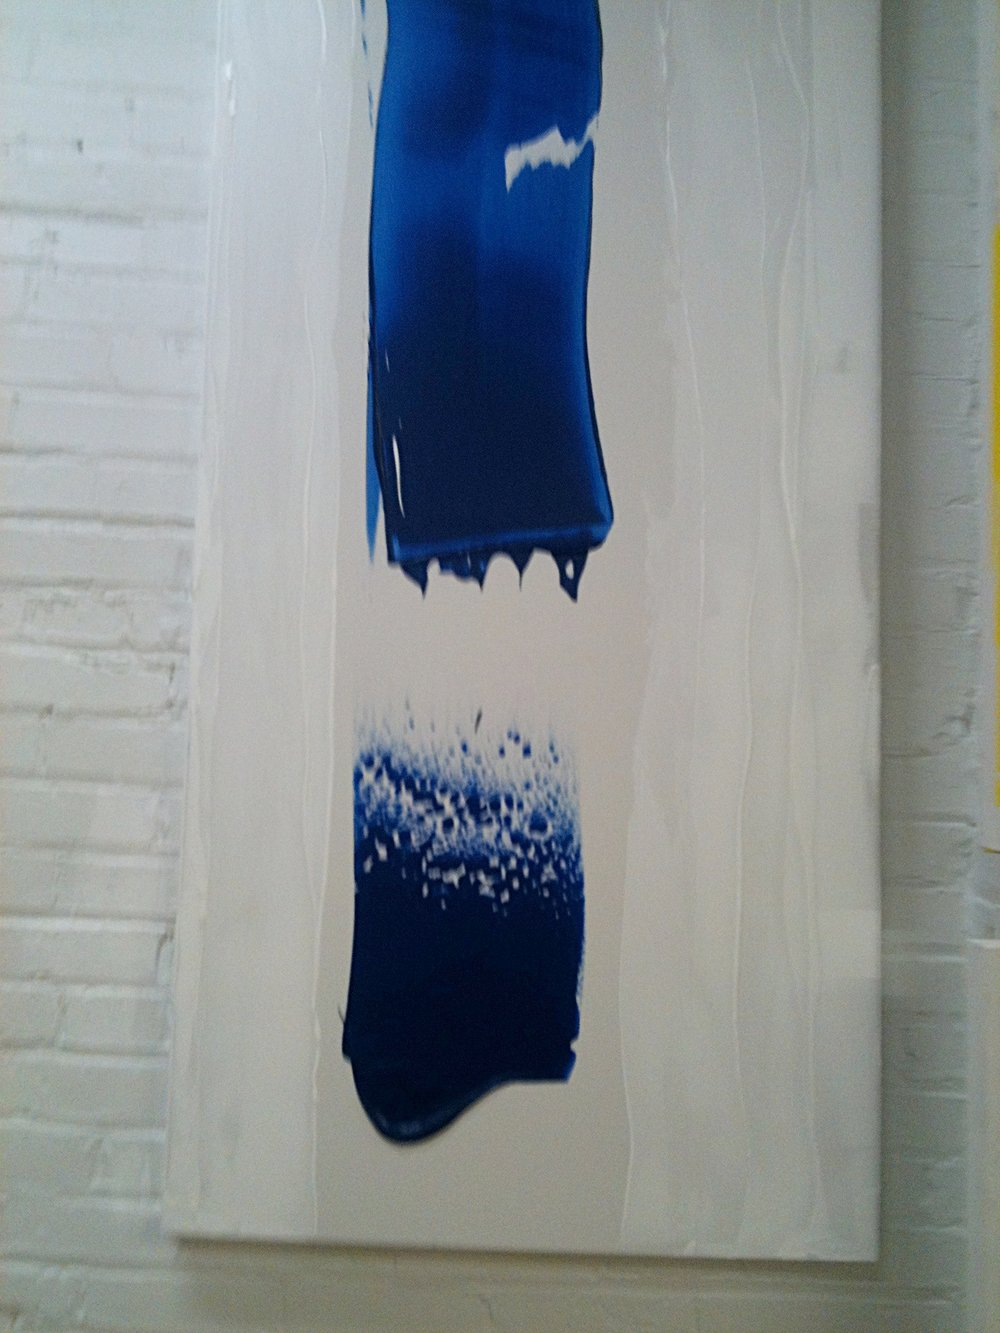 impetus series / acrylic on canvas / 60 in. x 40 in.